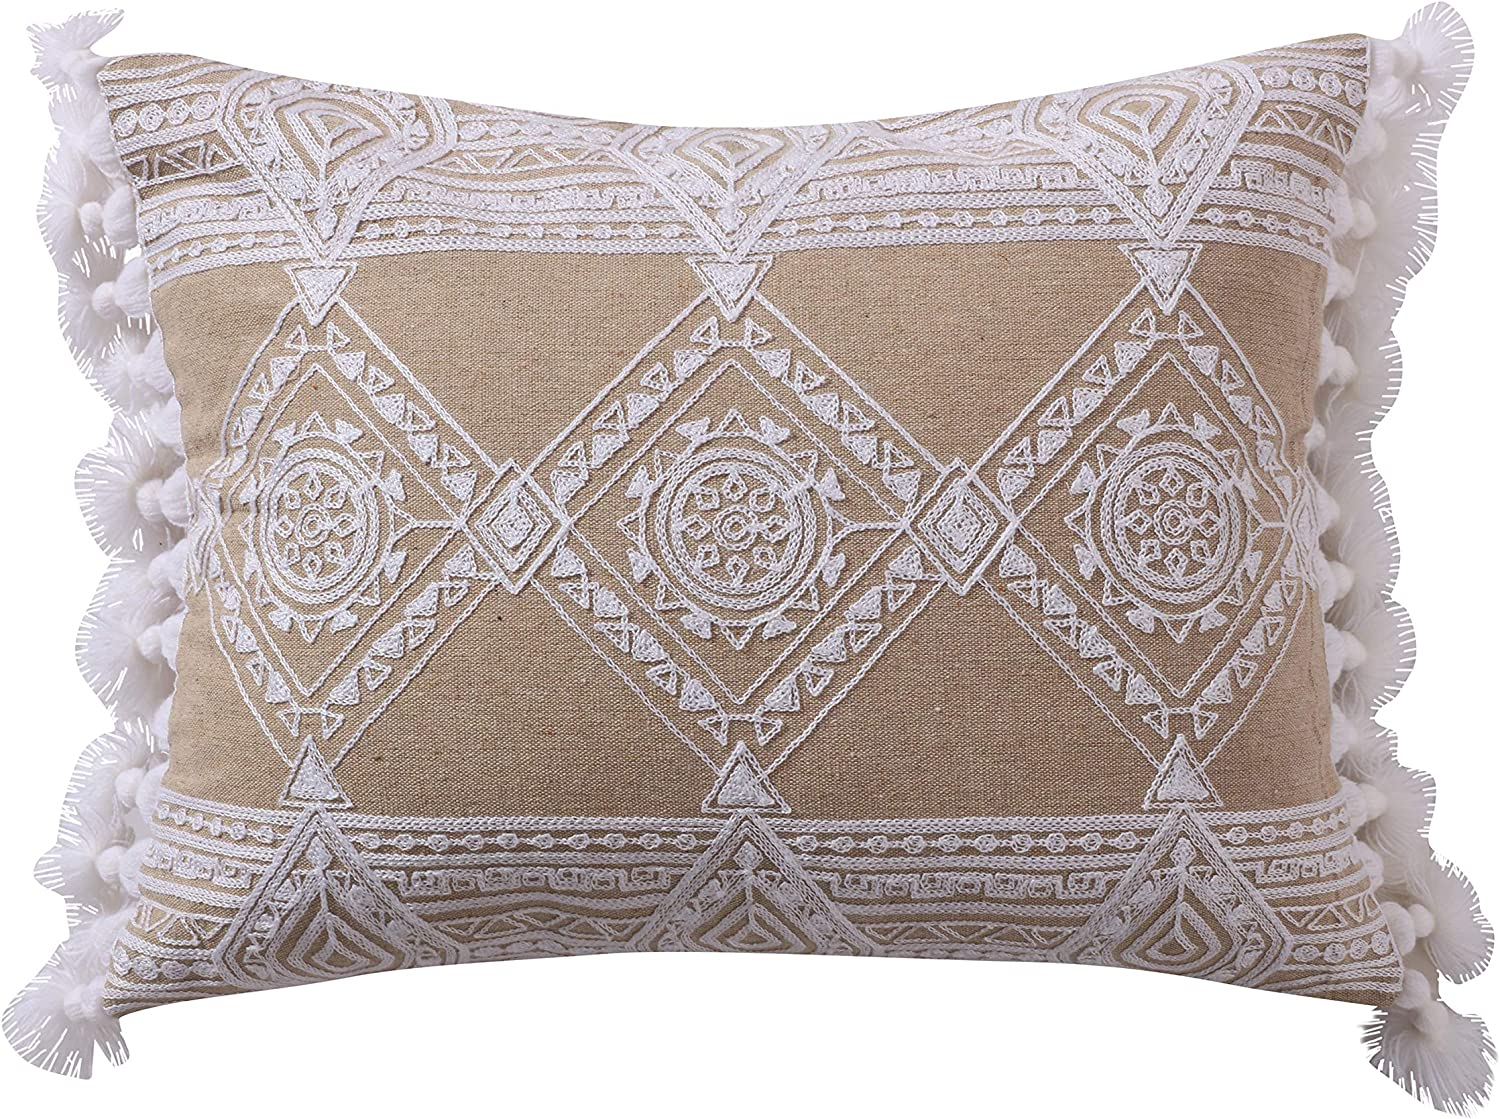 Amazon Com Levtex Home Harleson White Diamonds With Tassels Pillow 14x18 White And Natural Home Kitchen